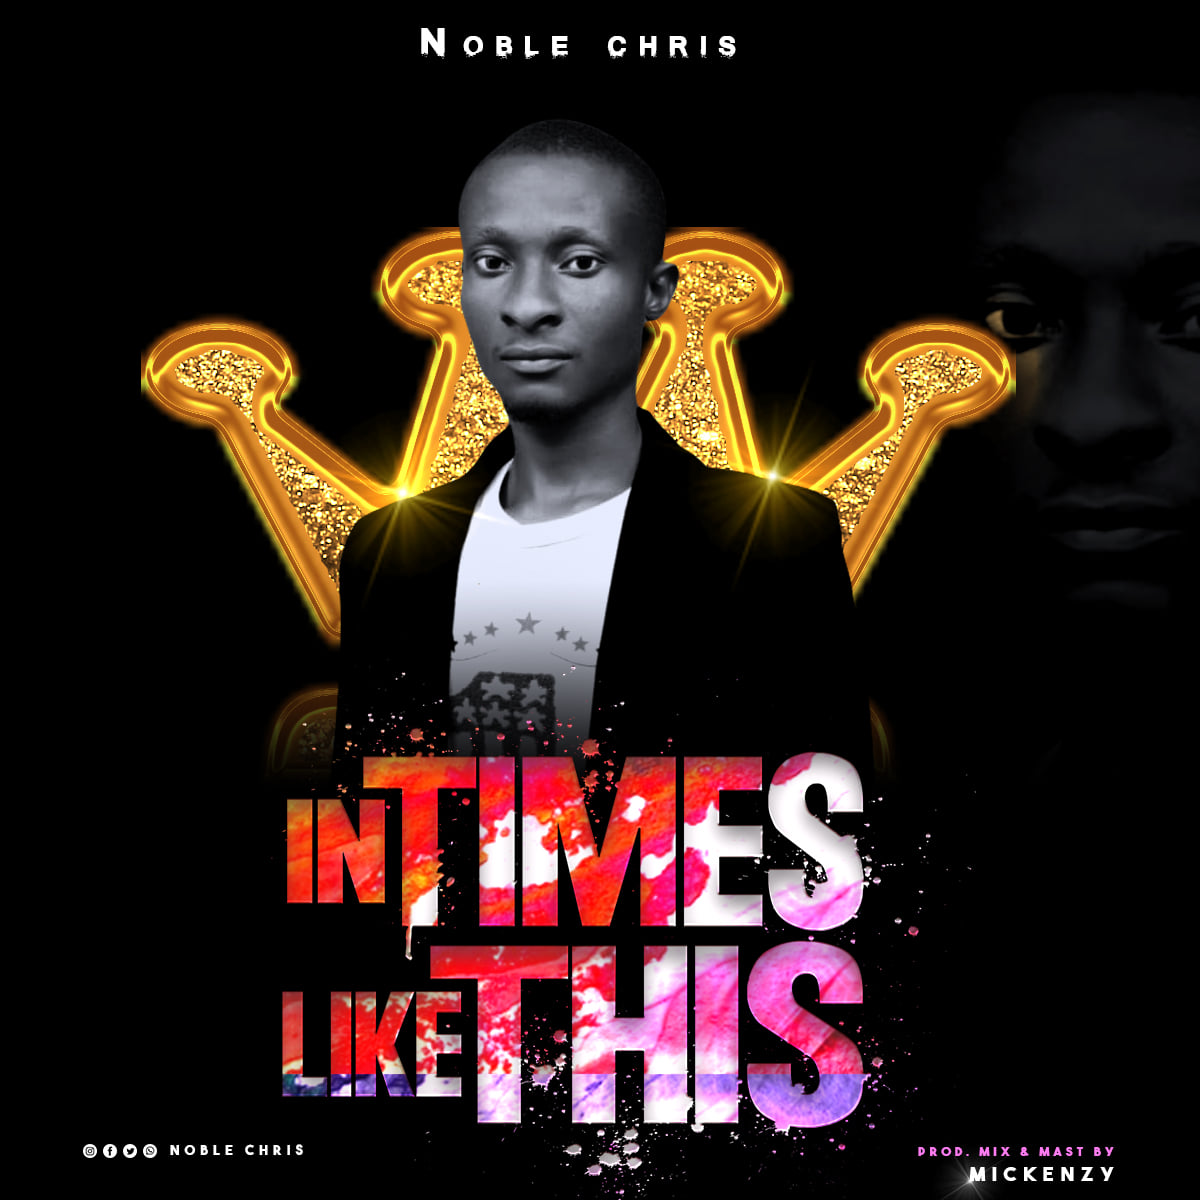 Download In Times Like This MP3 by Noble Chris - Www.djitunez.com